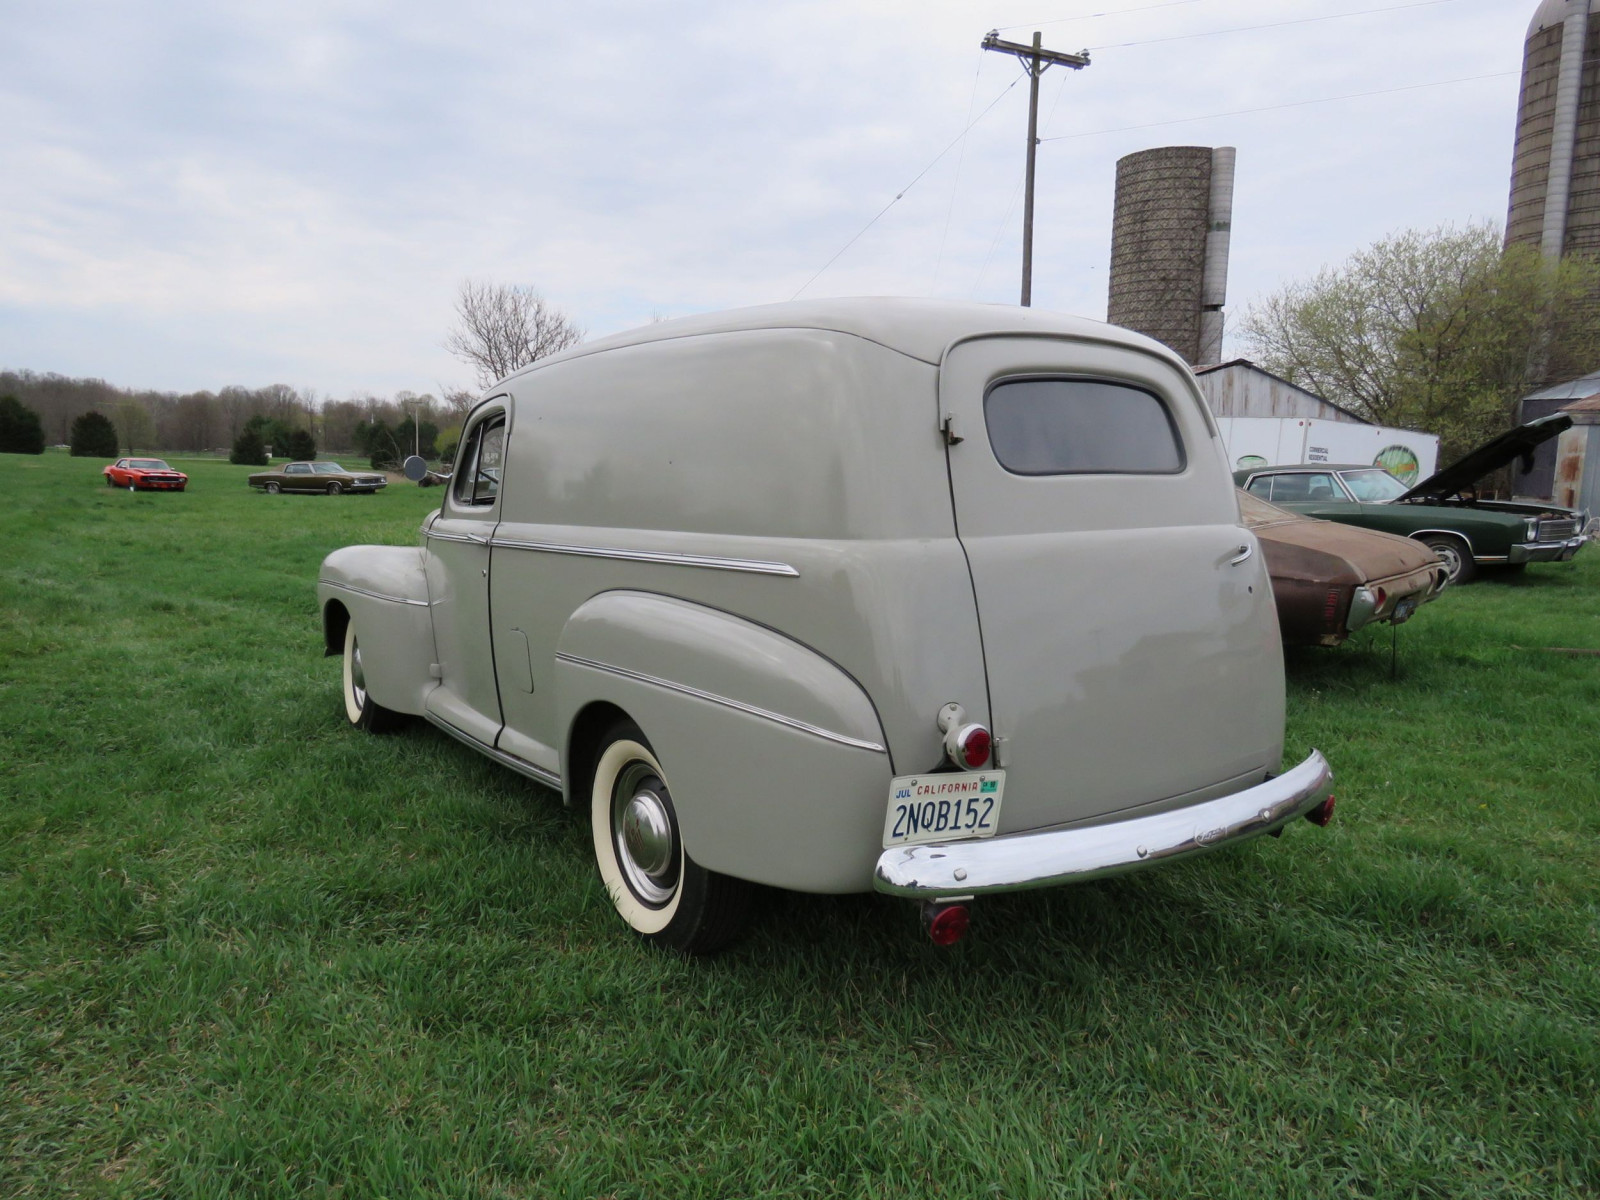 1946 Ford Sedan Delivery - Image 5